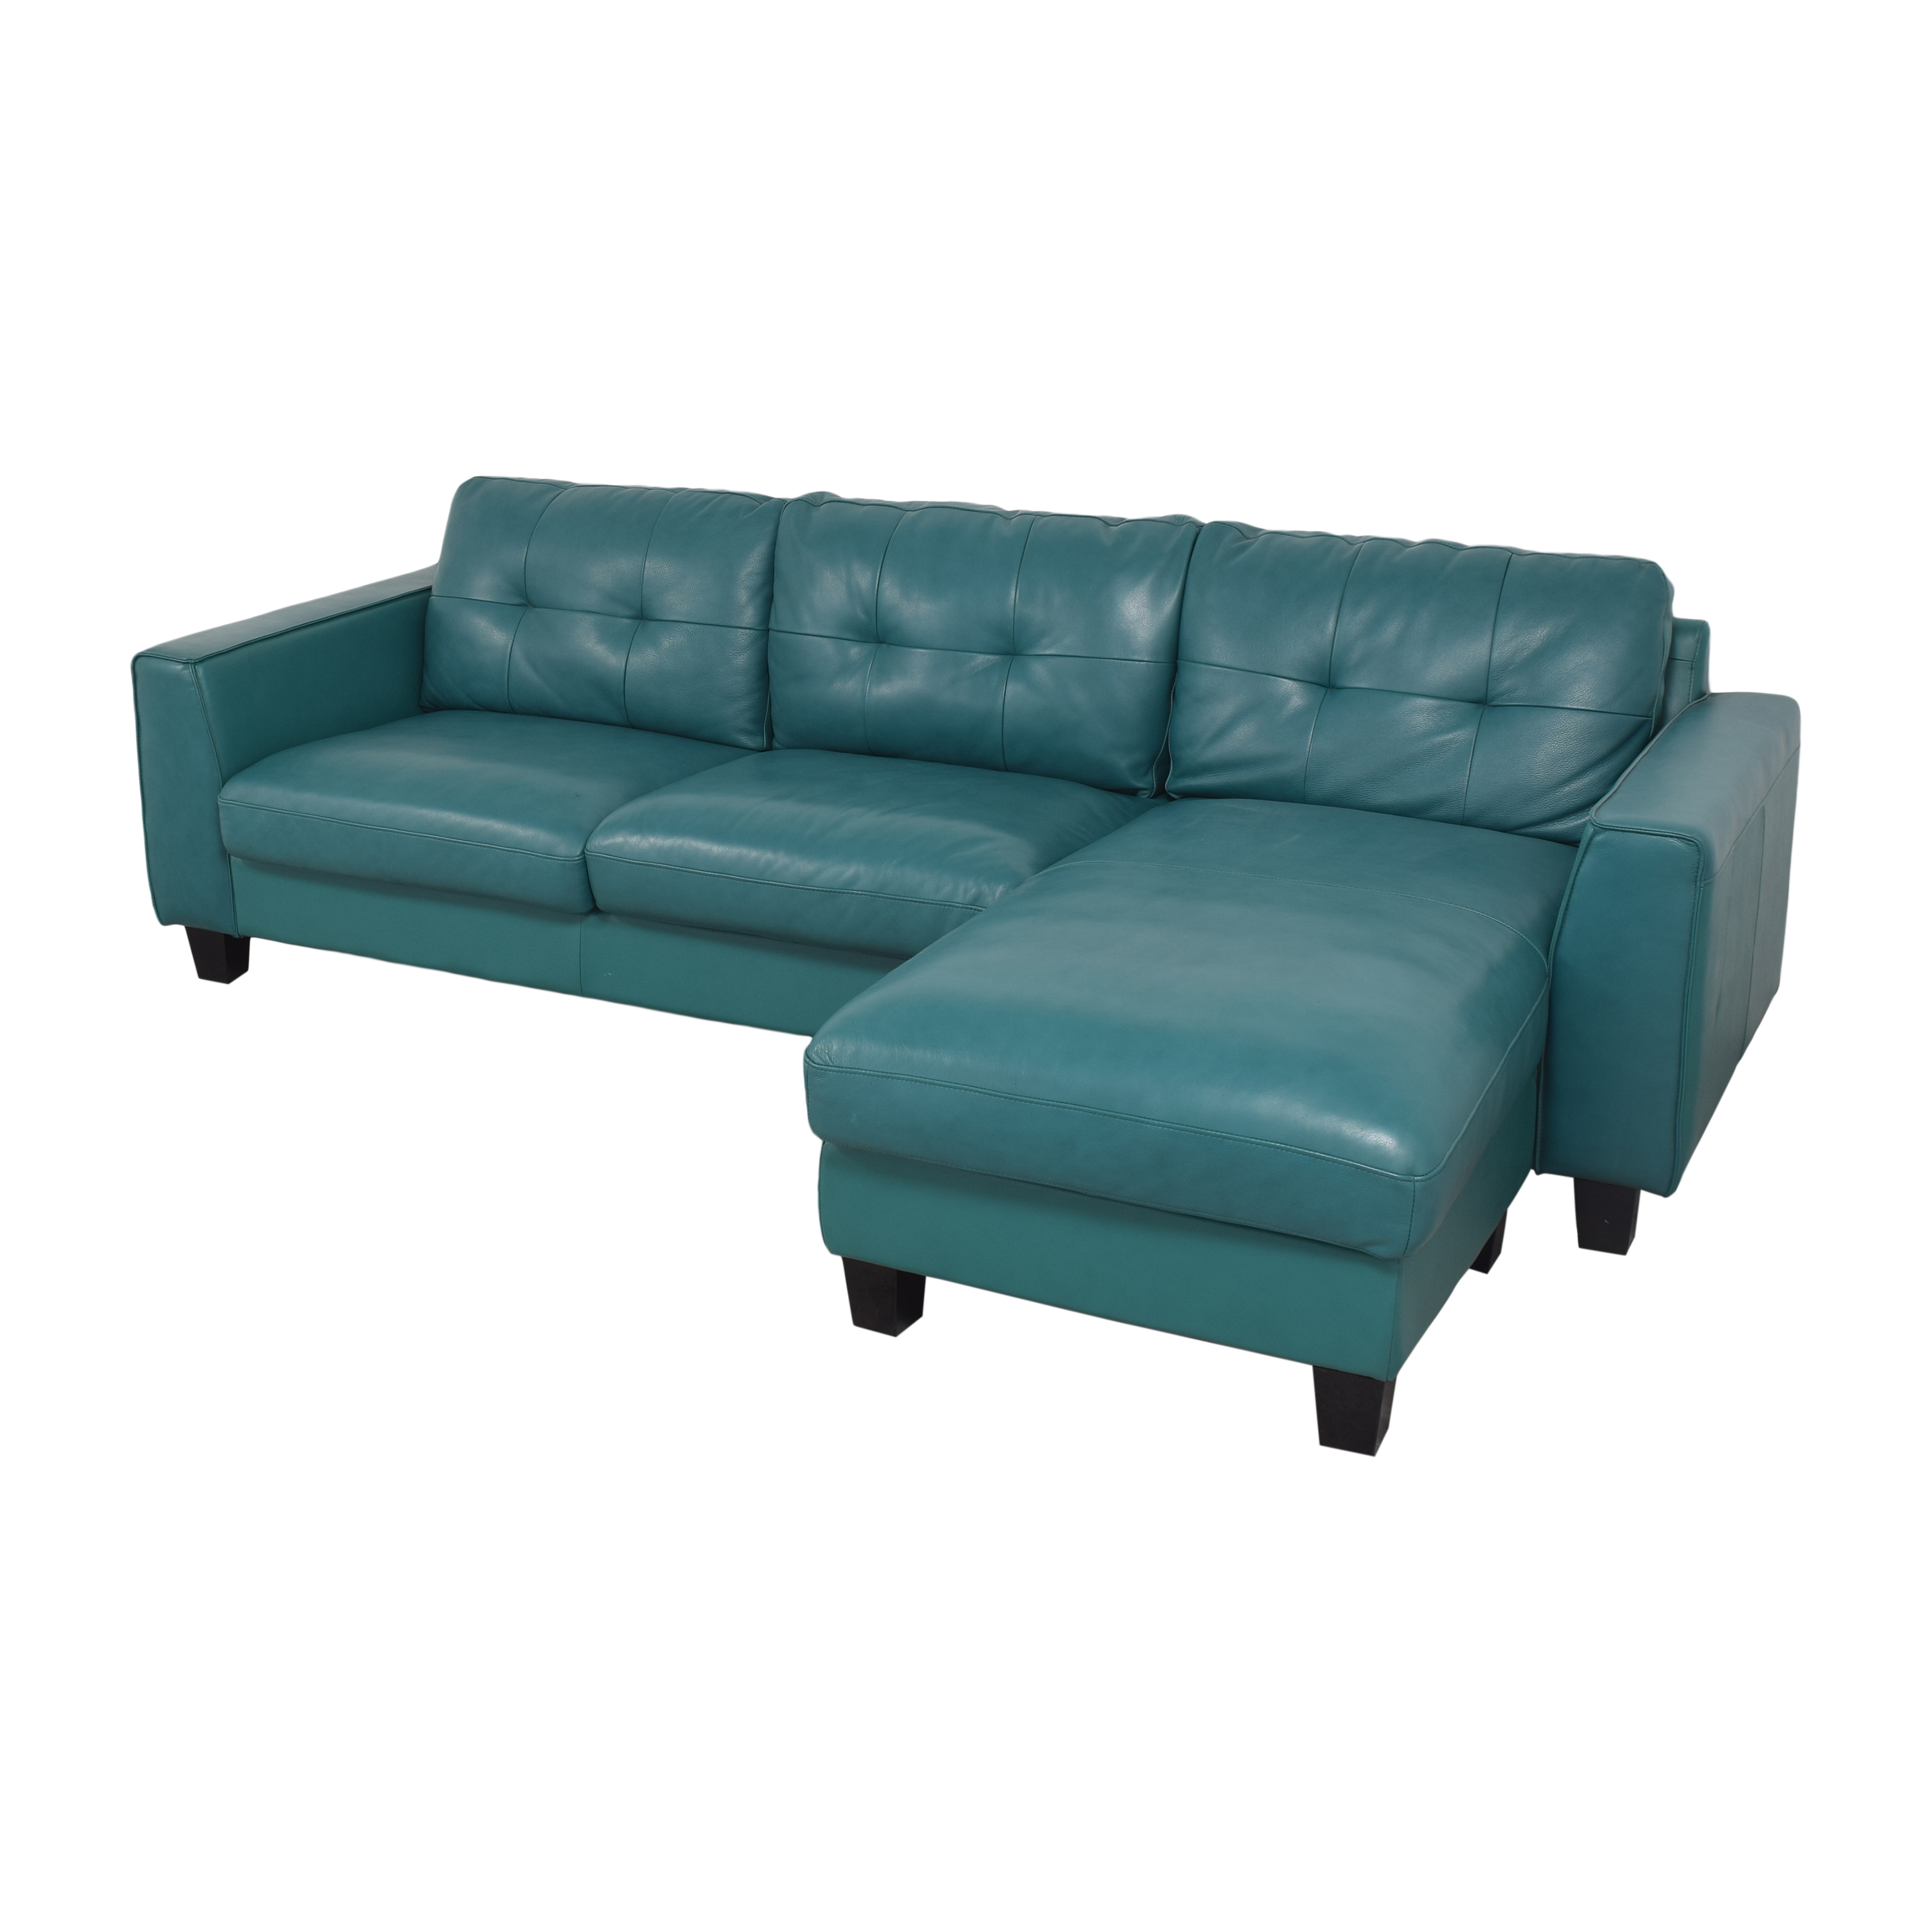 buy Costco Sectional Sofa with Chaise Costco Sofas